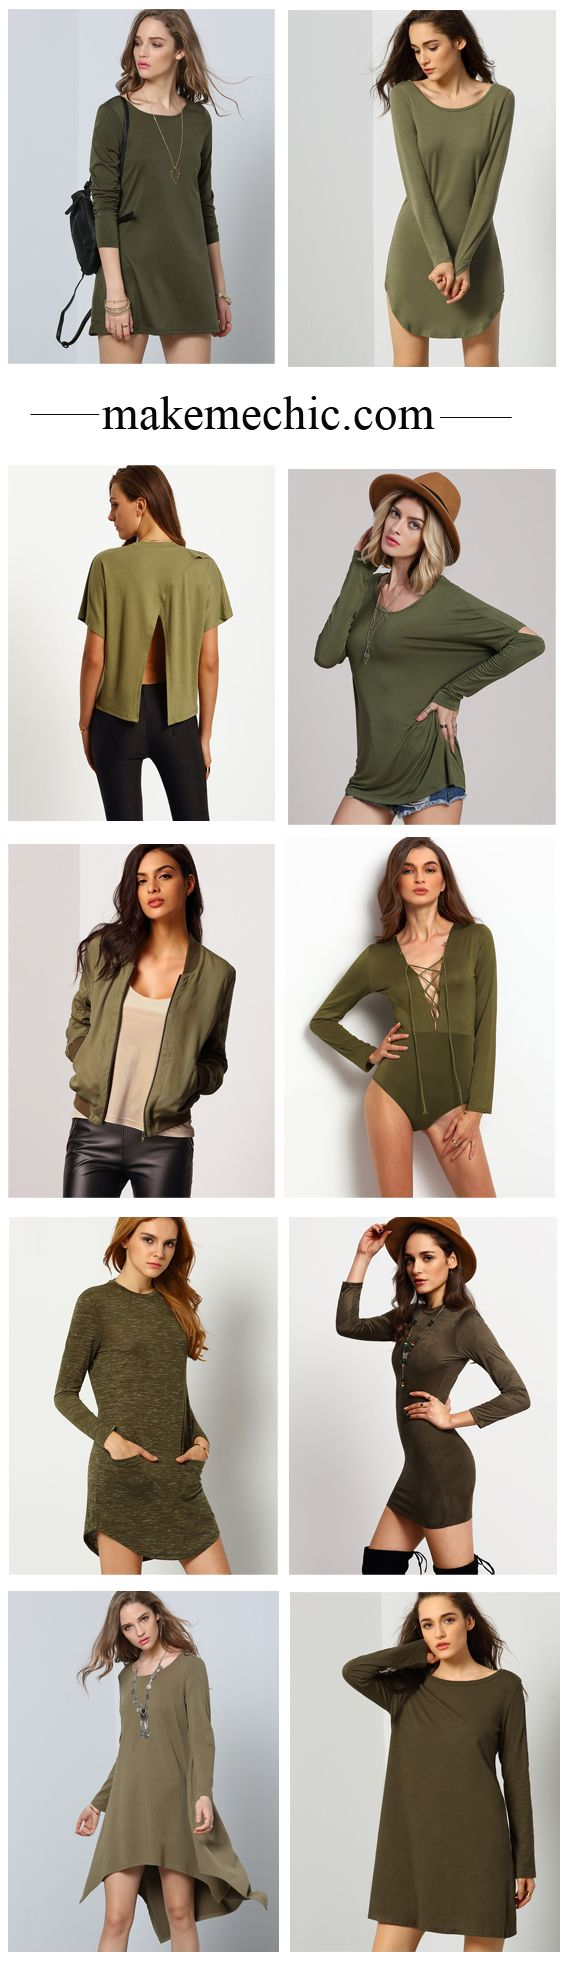 Feel breezy for a day with one of these cool army clothes. Easily pair with jeggings or shorts and you are good to go casual style.